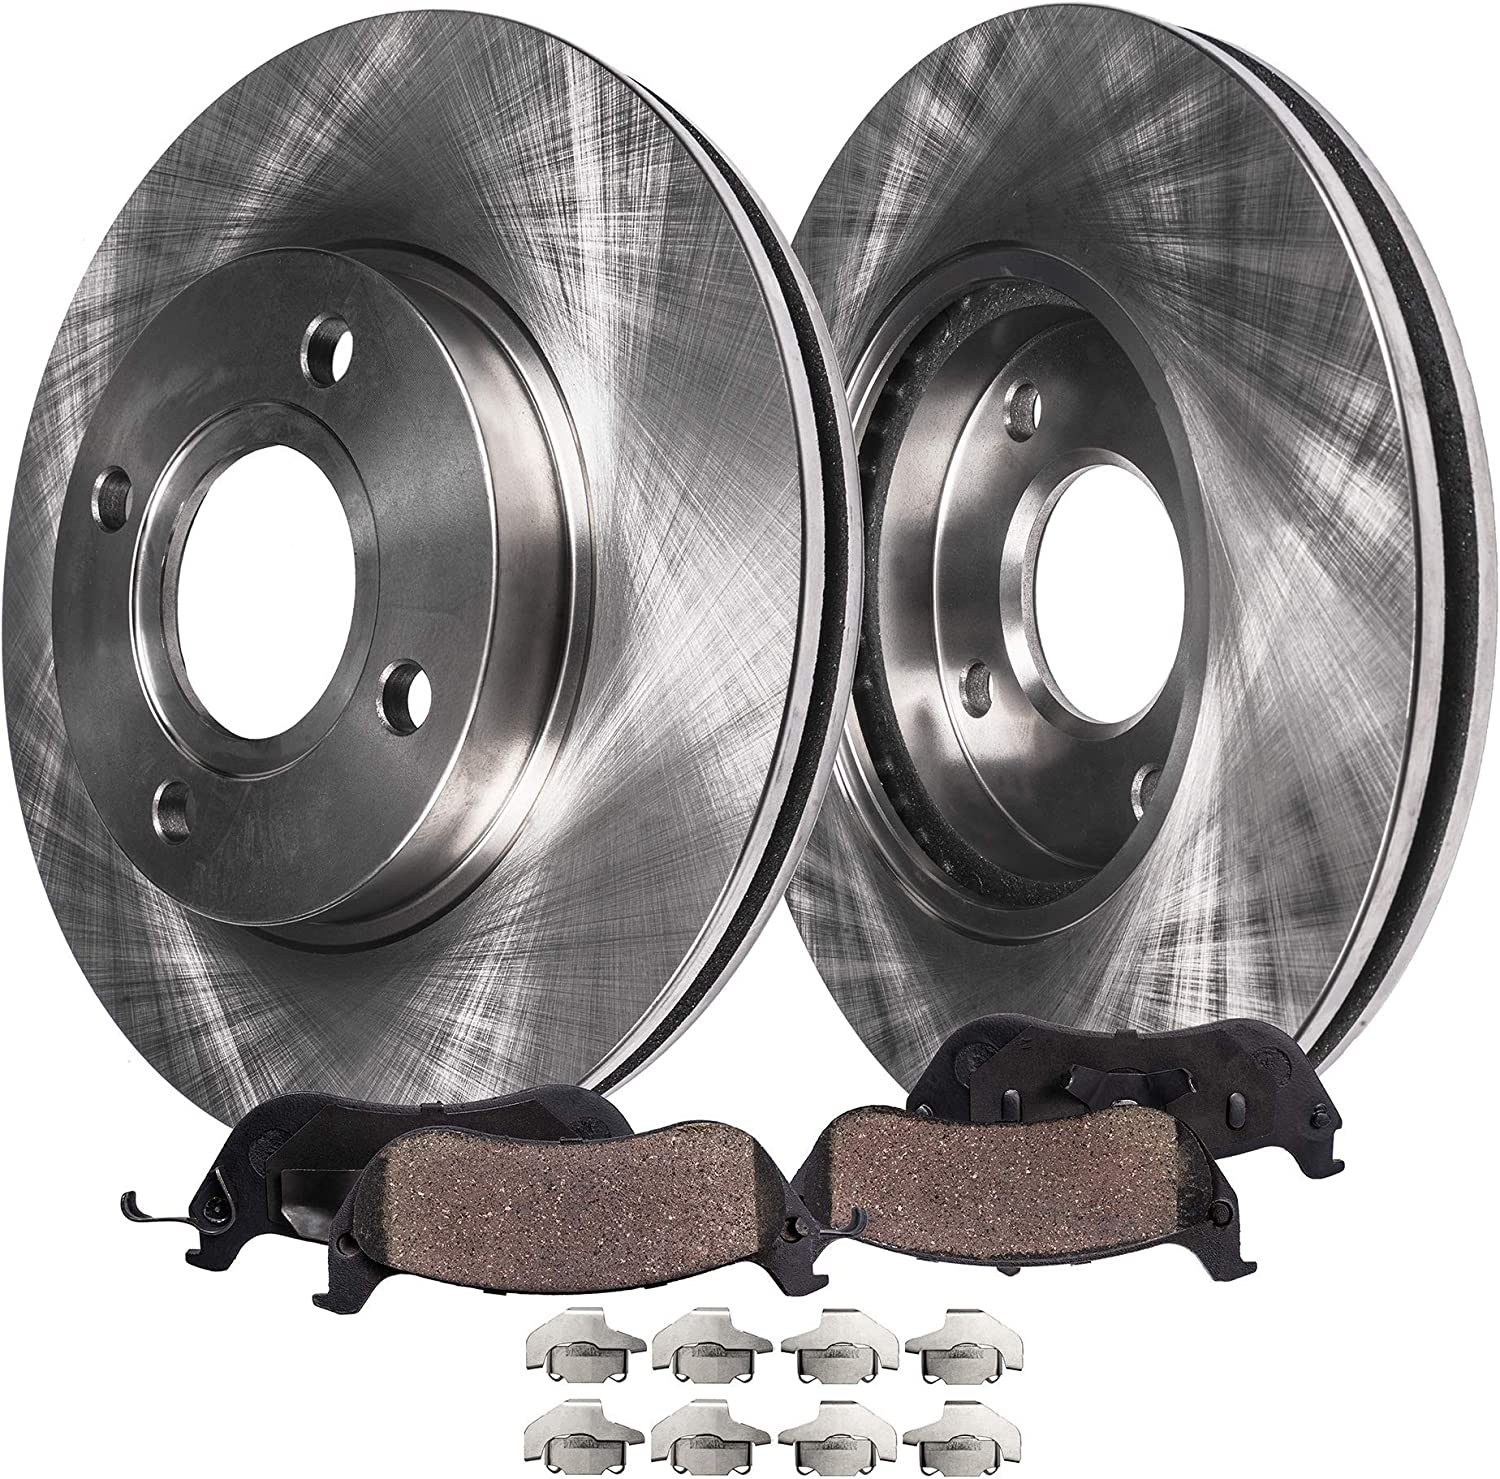 1990 1991 1992 Honda Civic DX//LX Sdn OE Replacement Rotors w//Ceramic Pads F